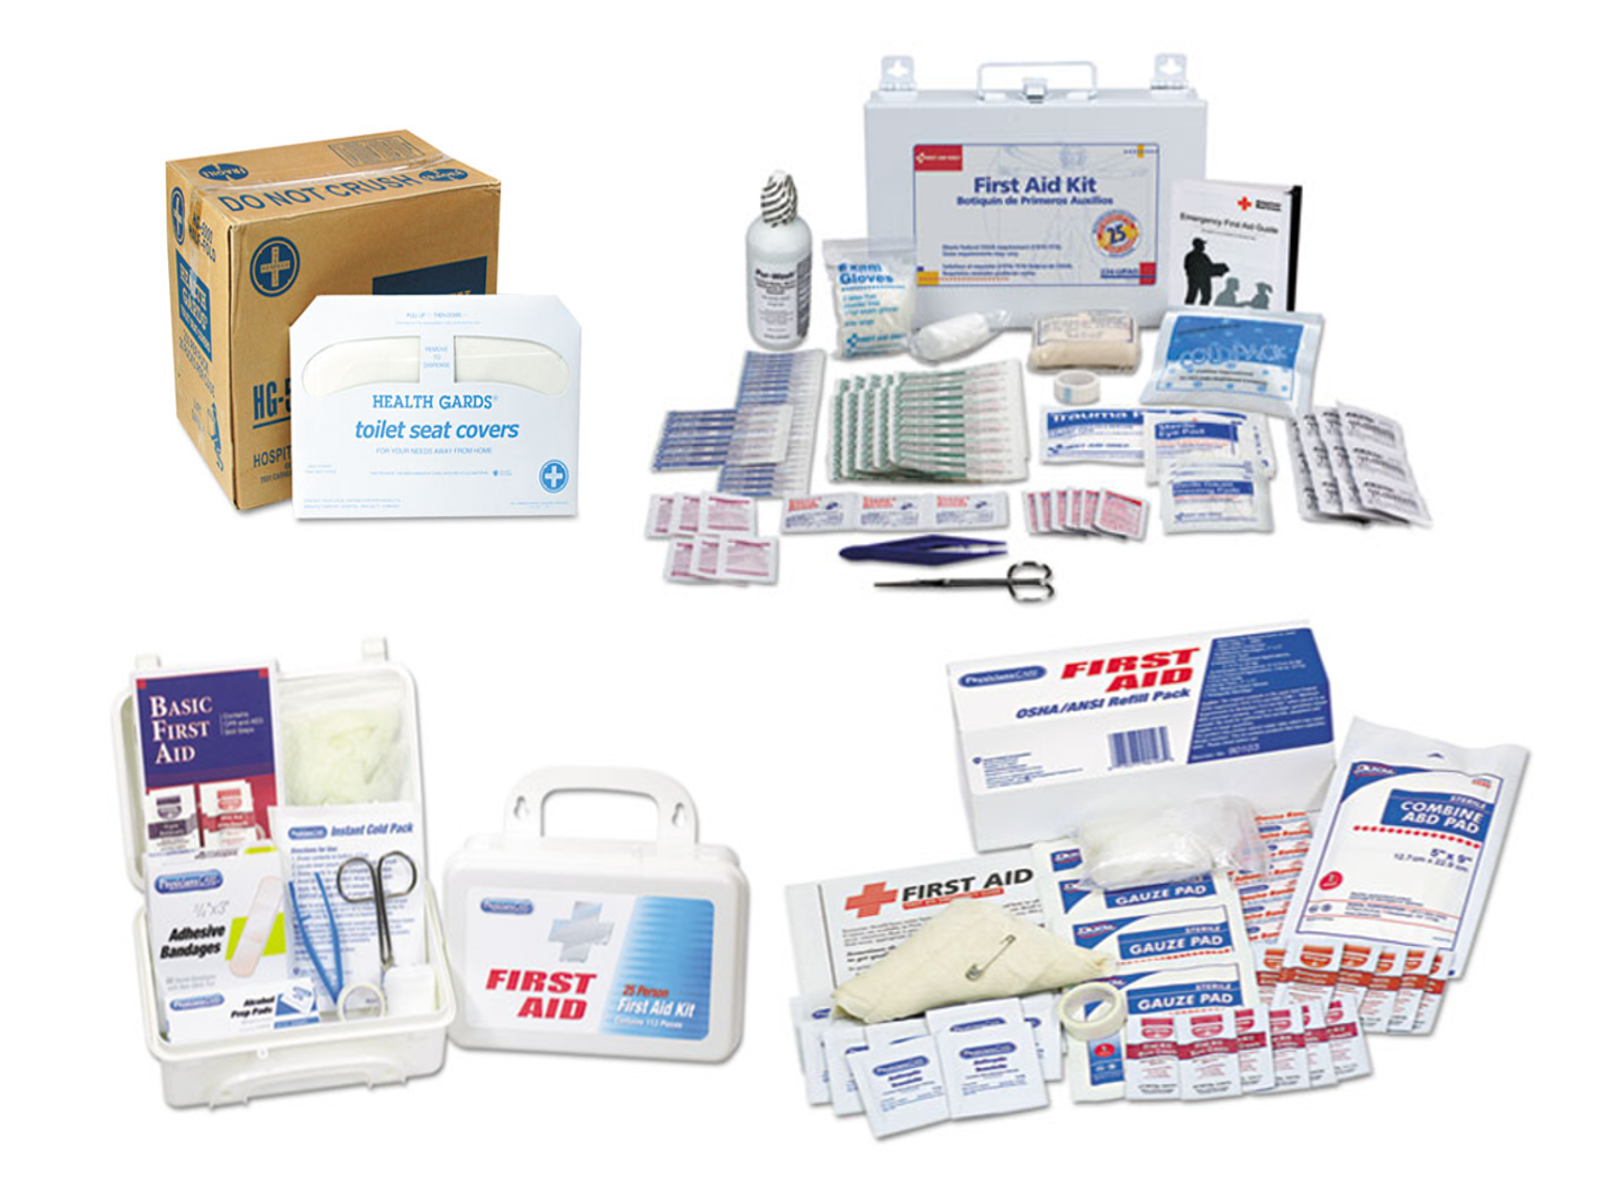 FIRST AID & HEALTH SUPPLIES